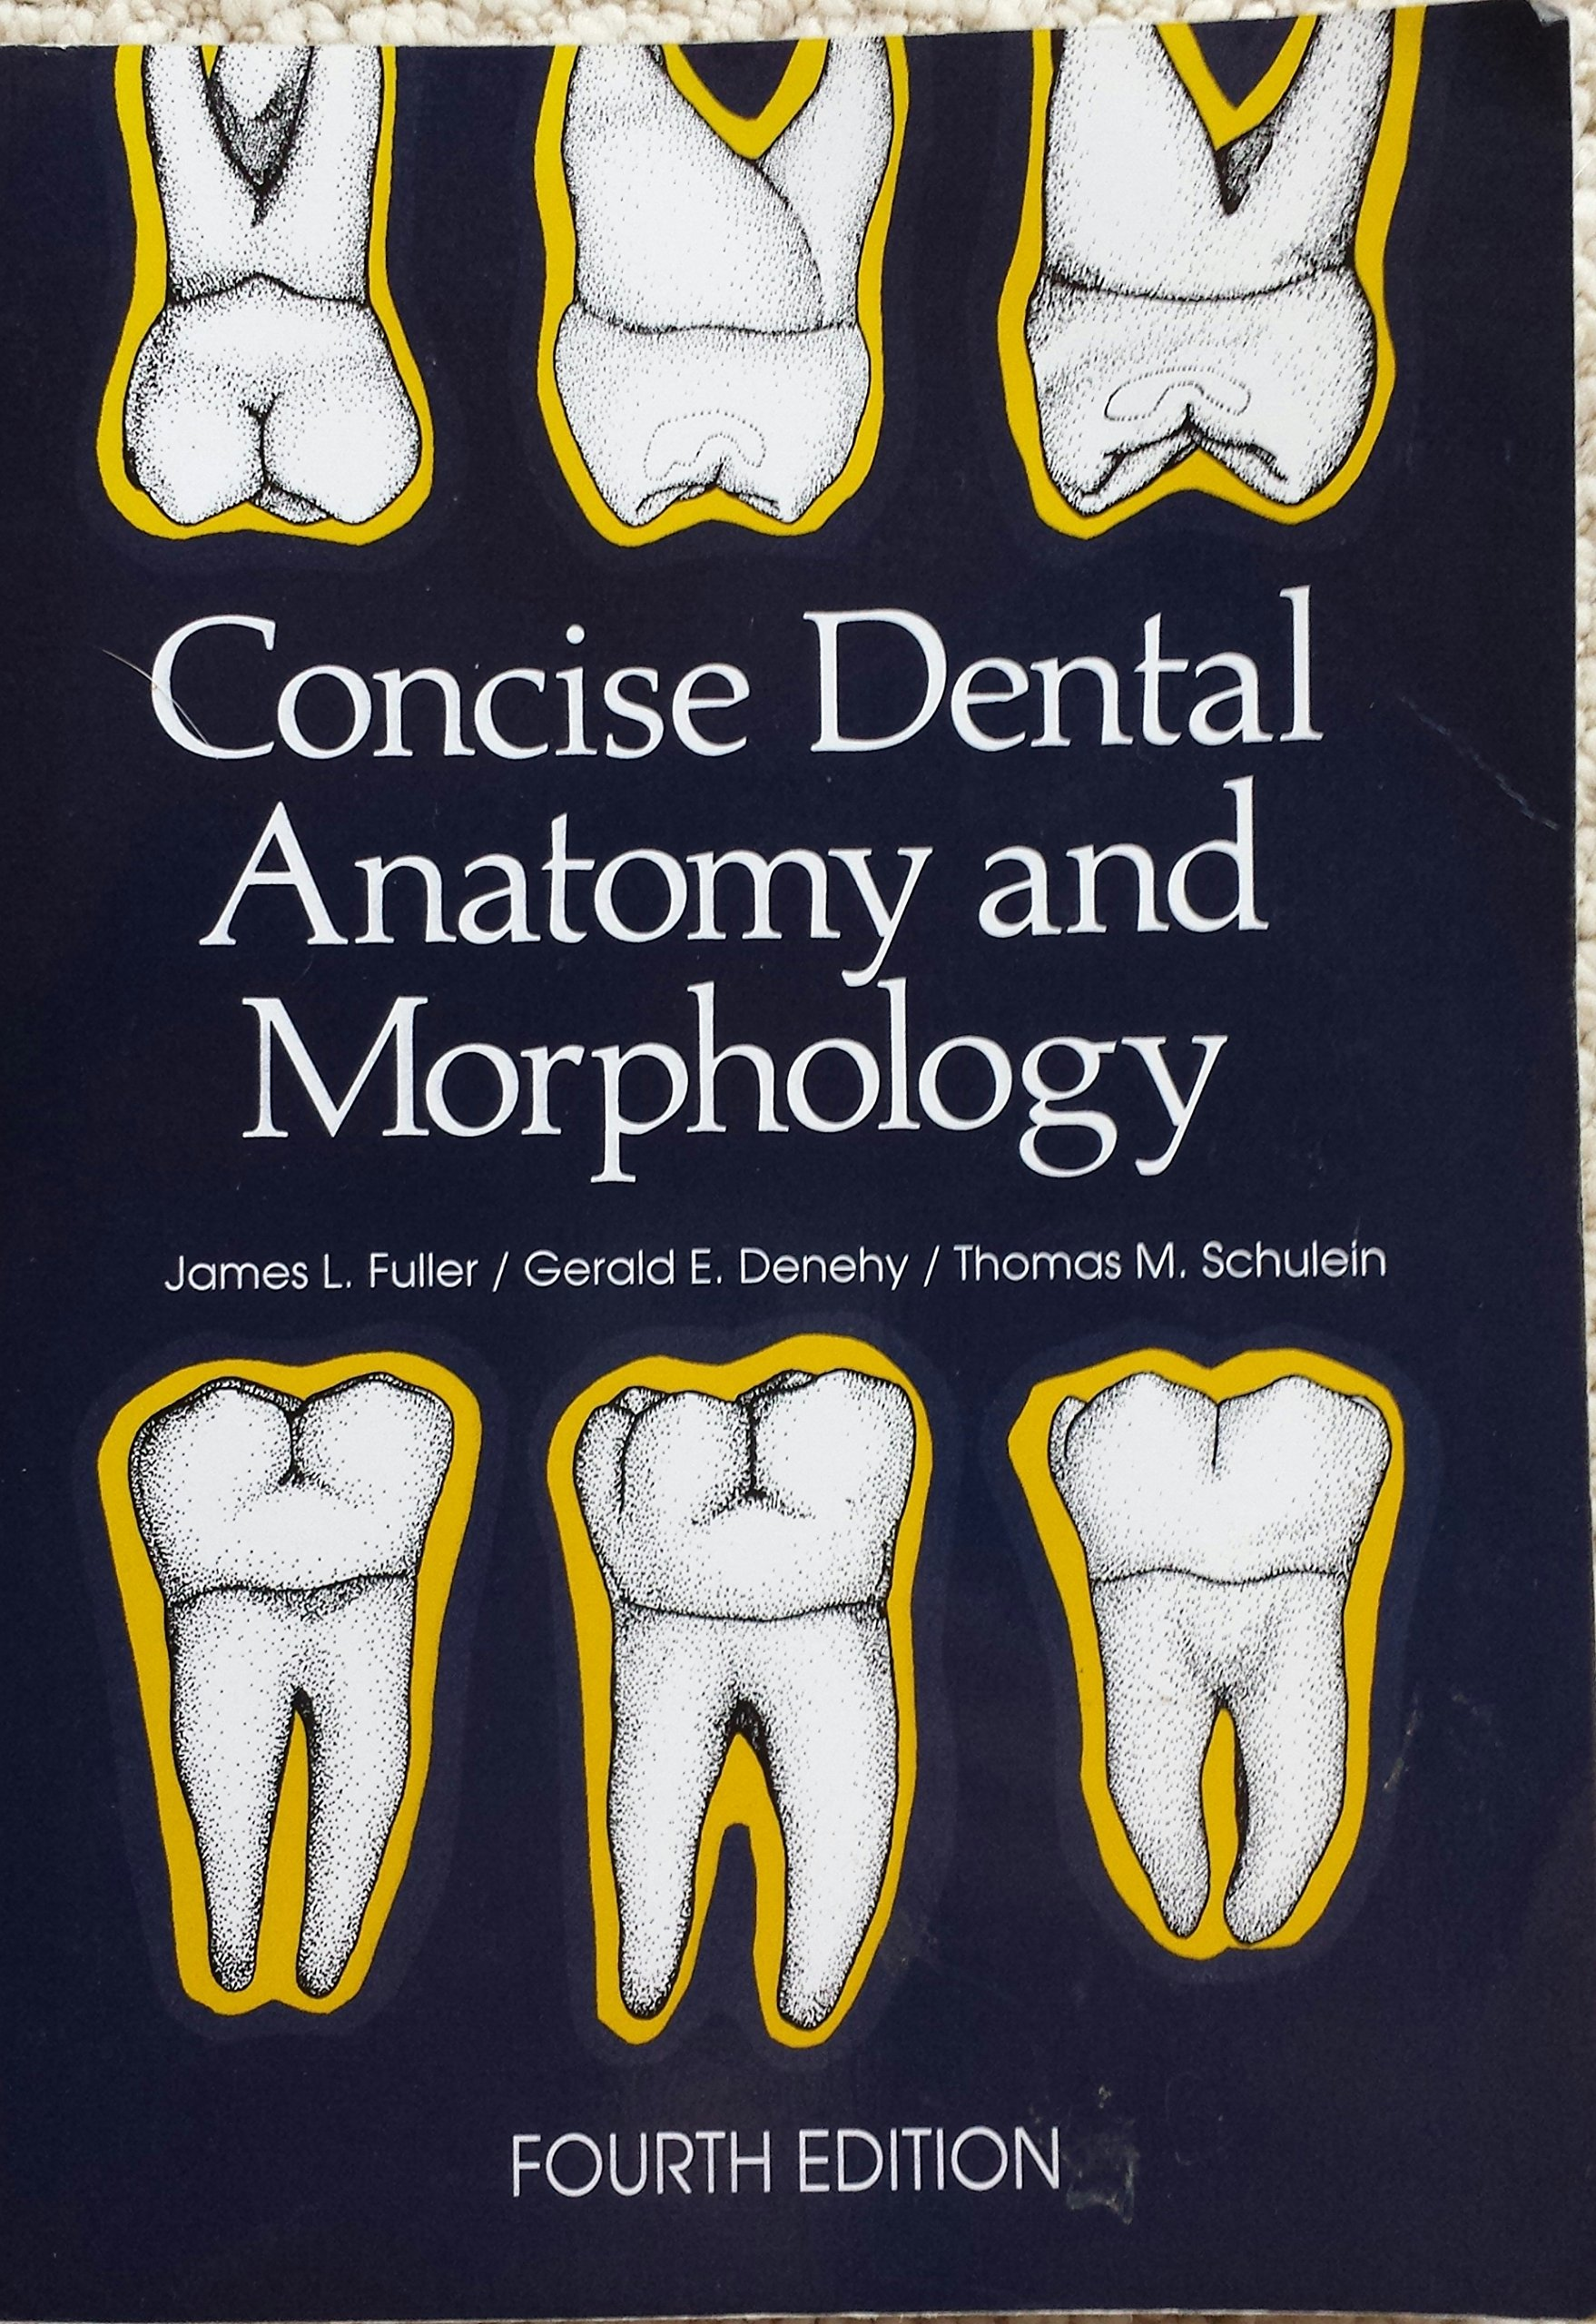 Buy Concise Dental Anatomy and Morphology Book Online at Low Prices ...